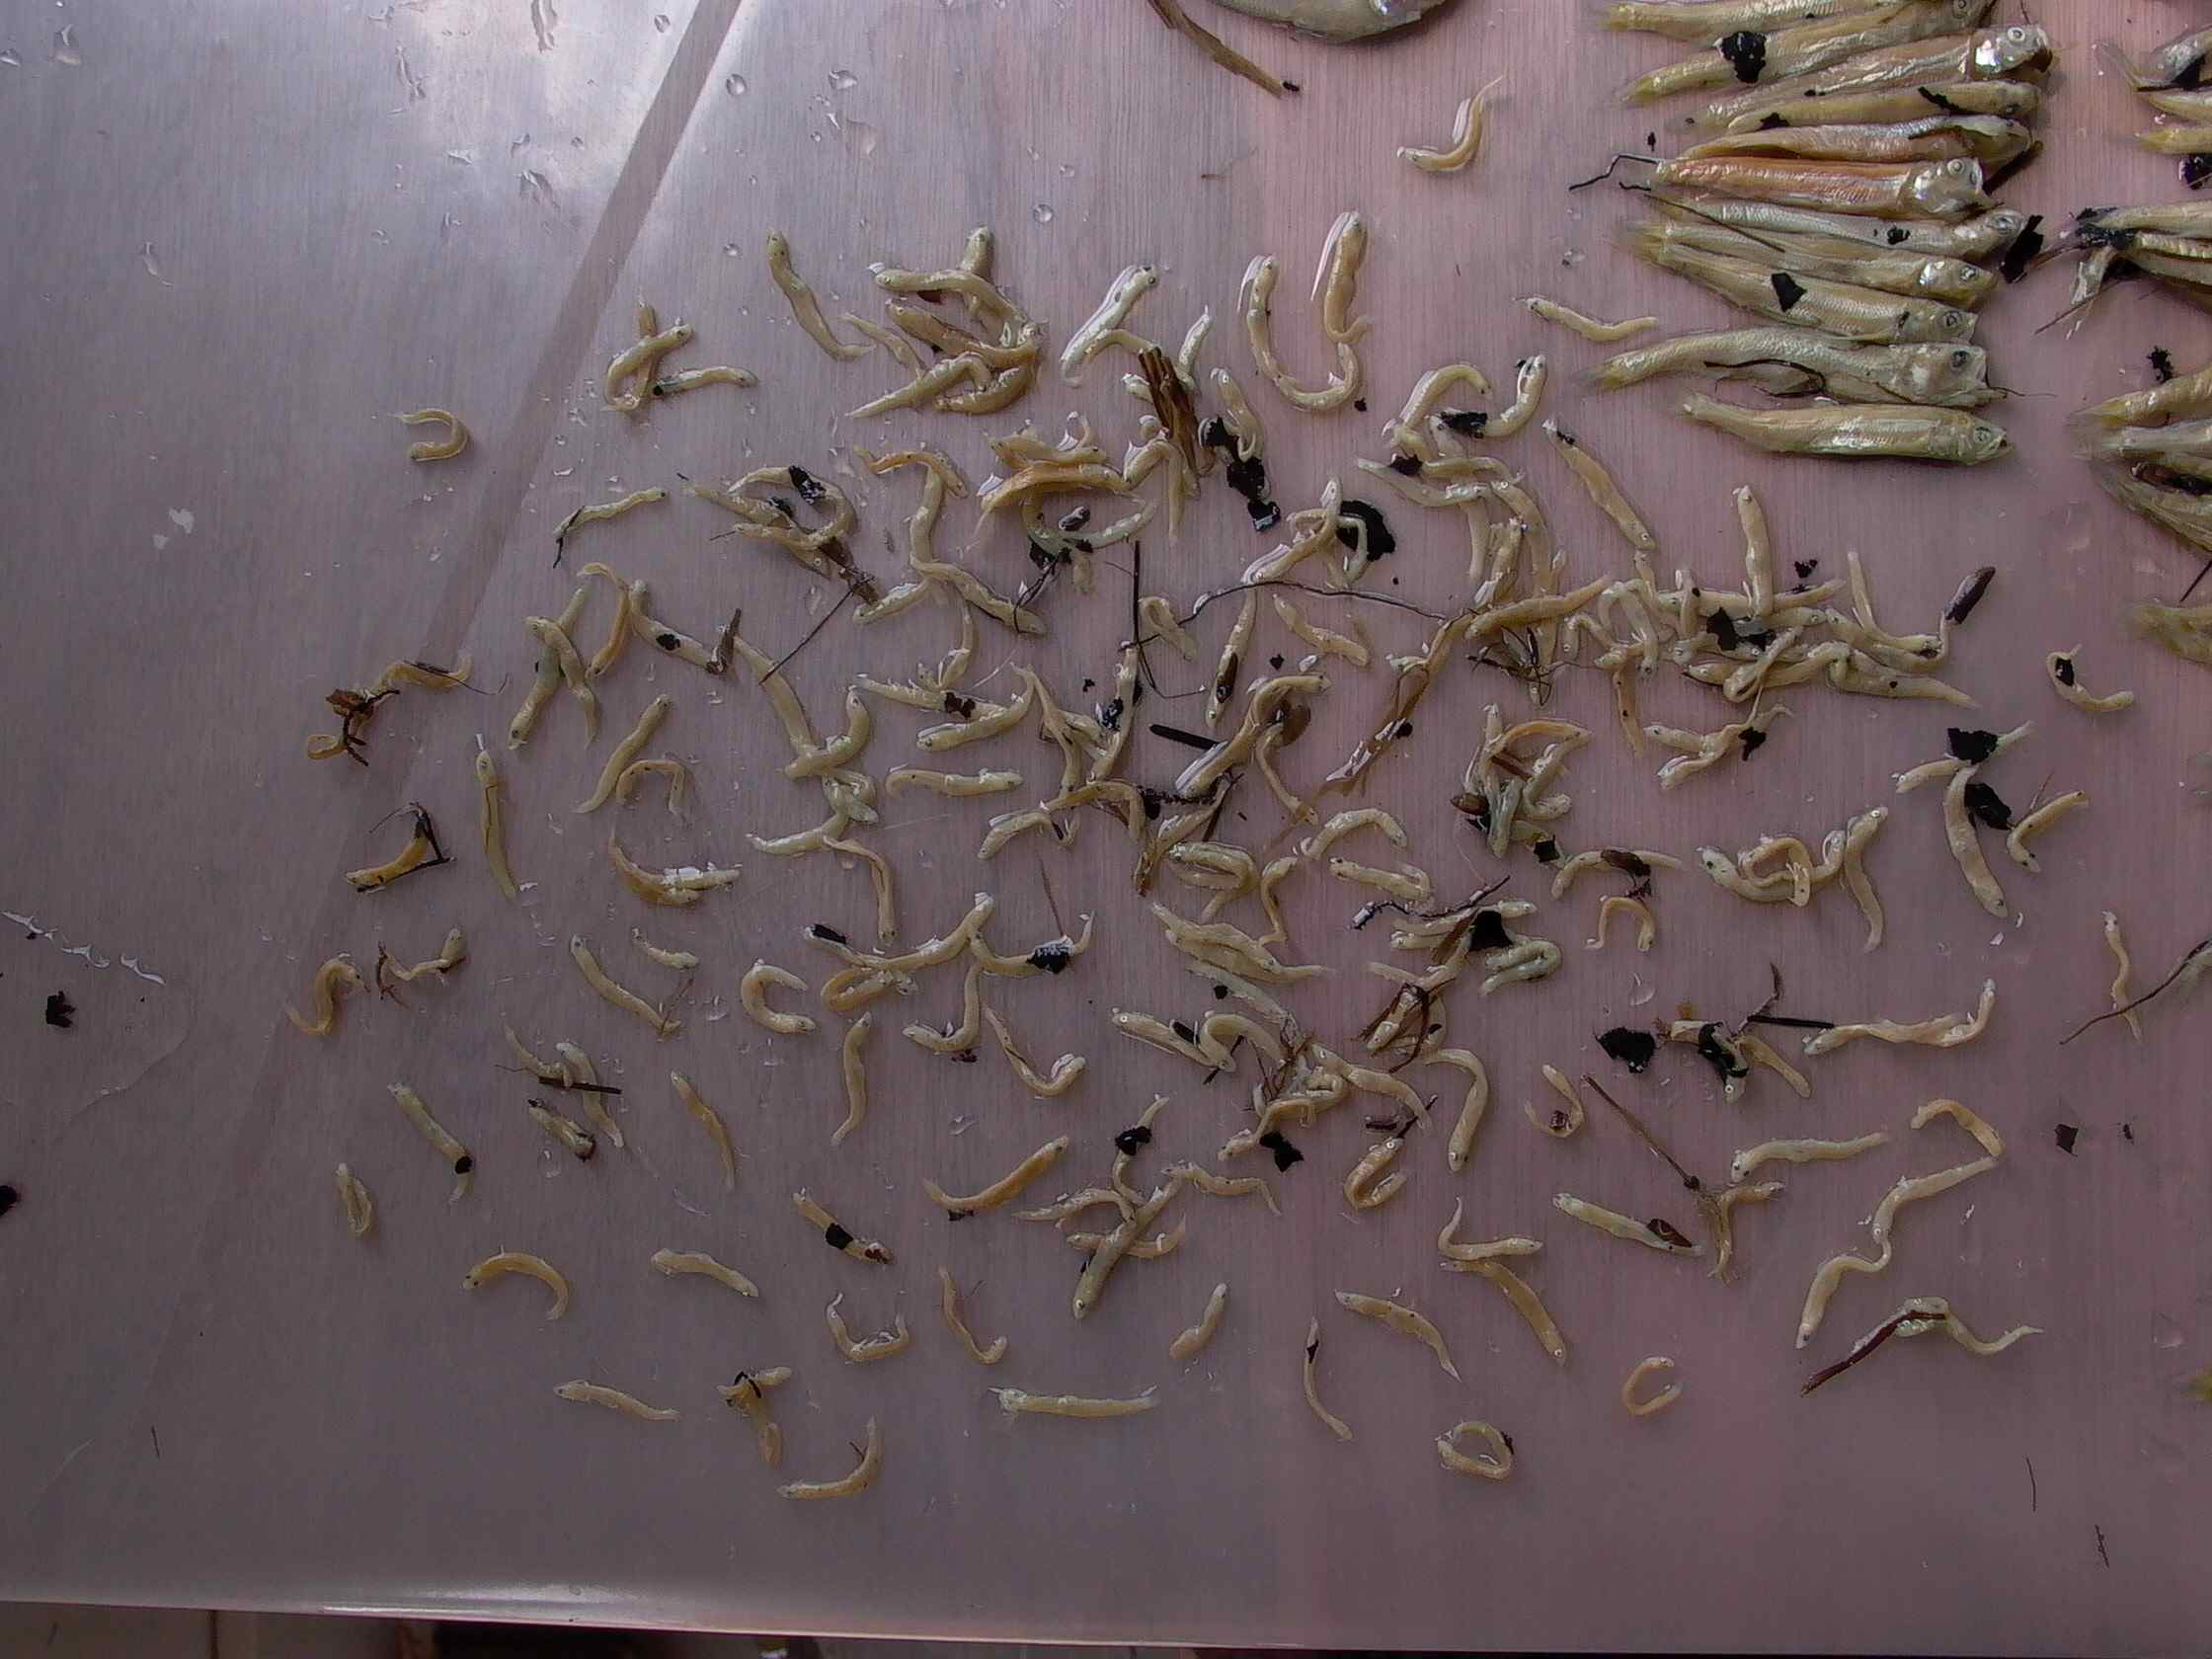 Cassiar Cannery - SERC - MB - JK - 2011/2012 - lots of long fin smelts in sample 22 (1) 2011